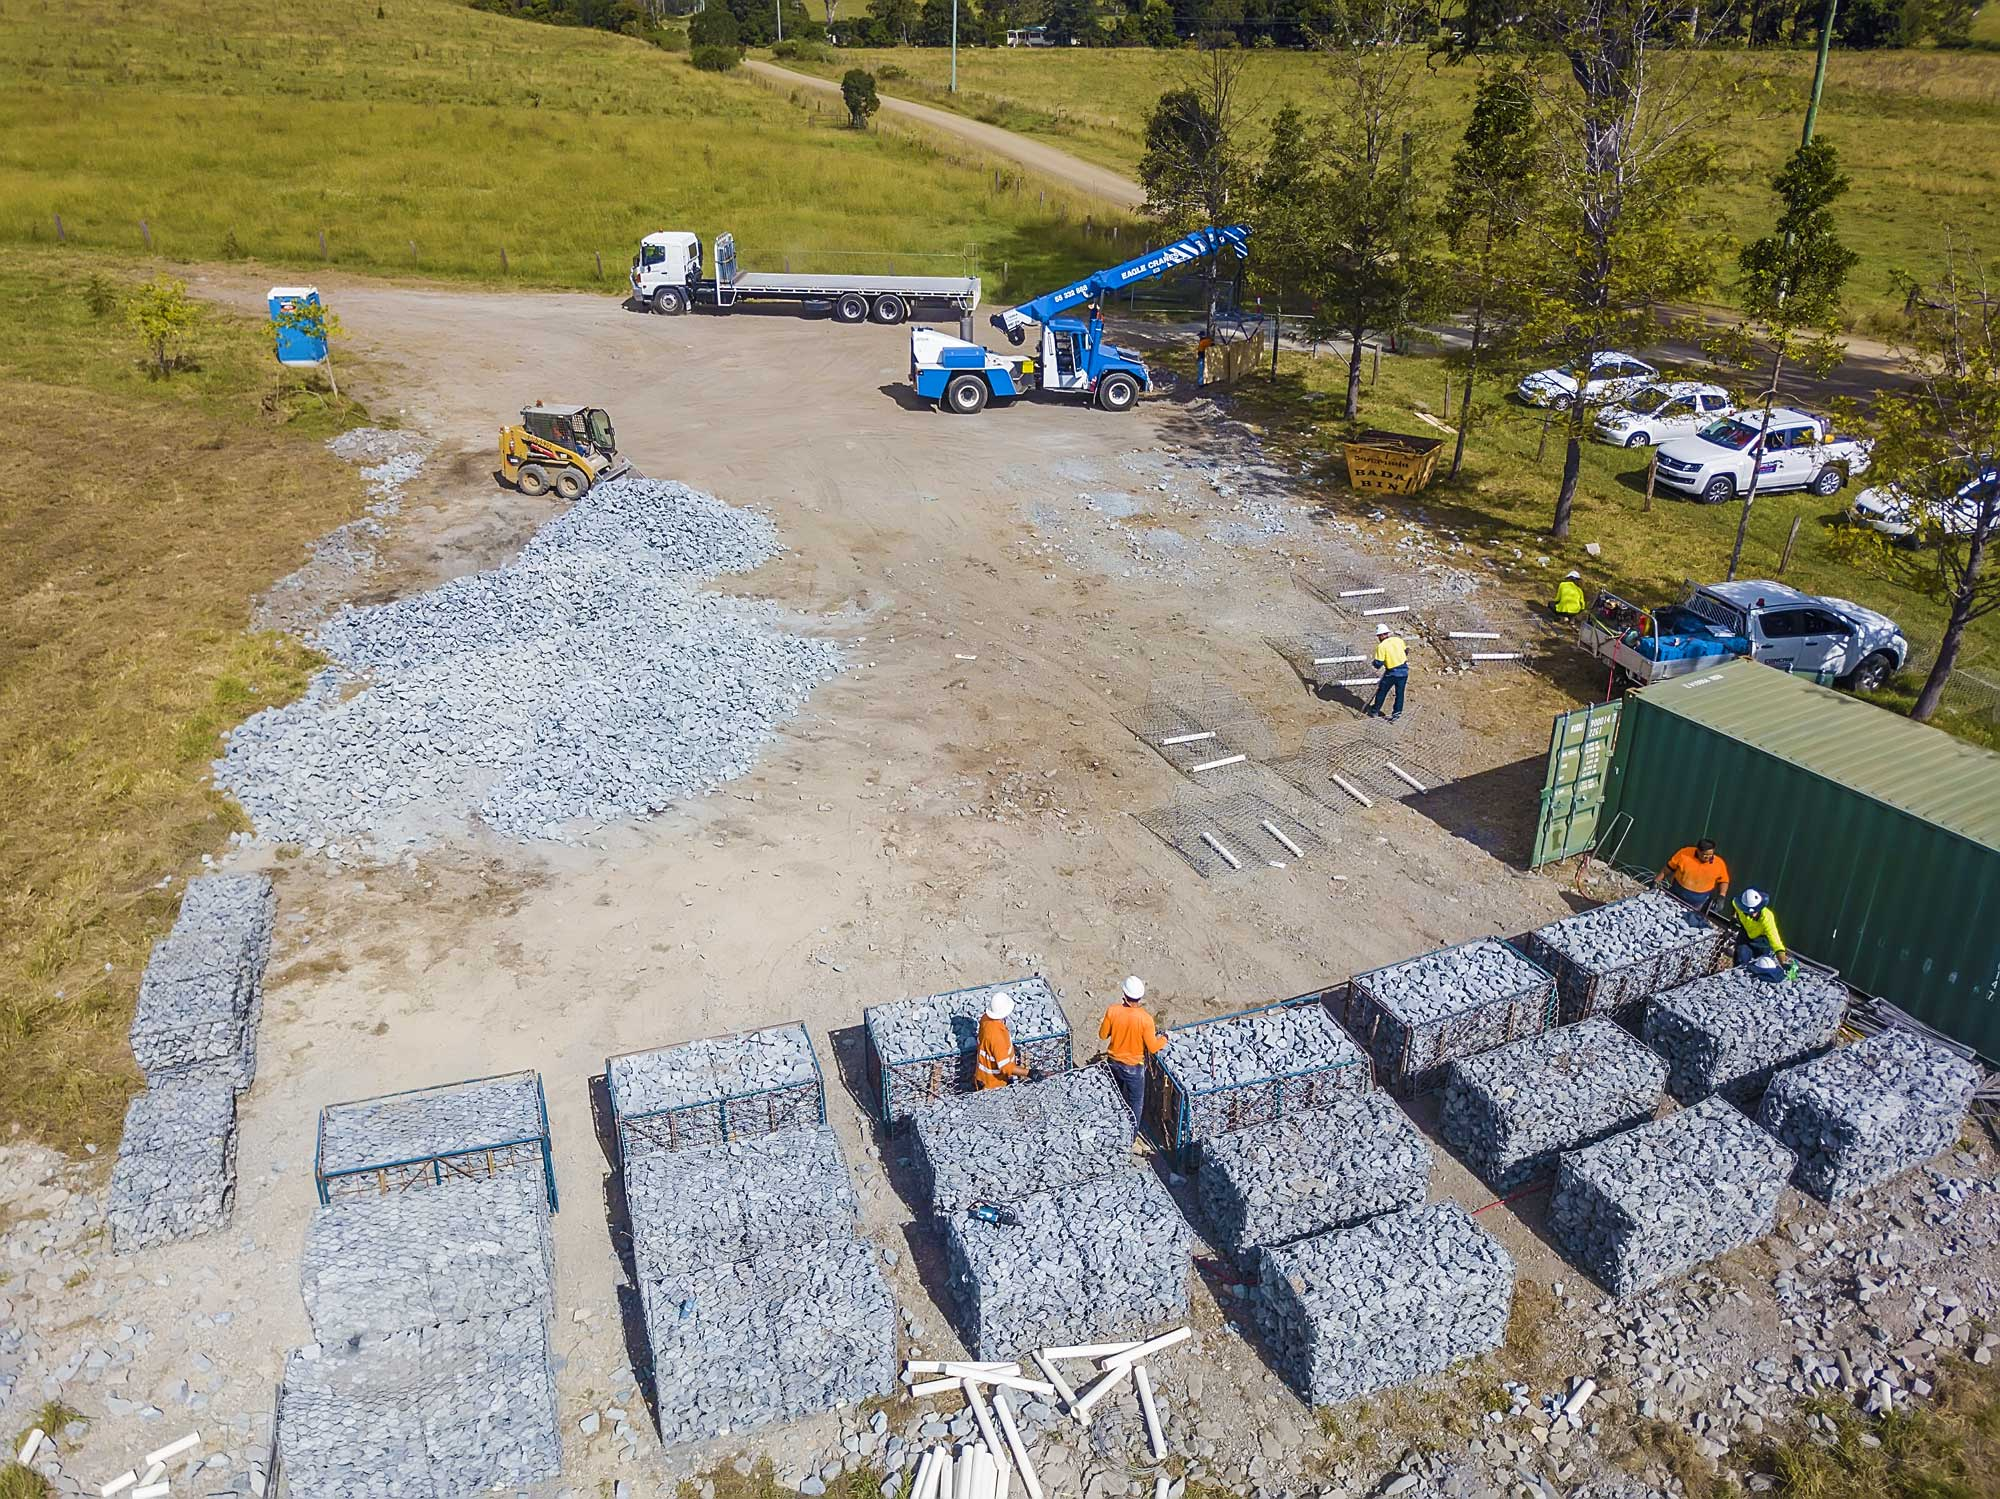 Drone Photography of gabion basket construction